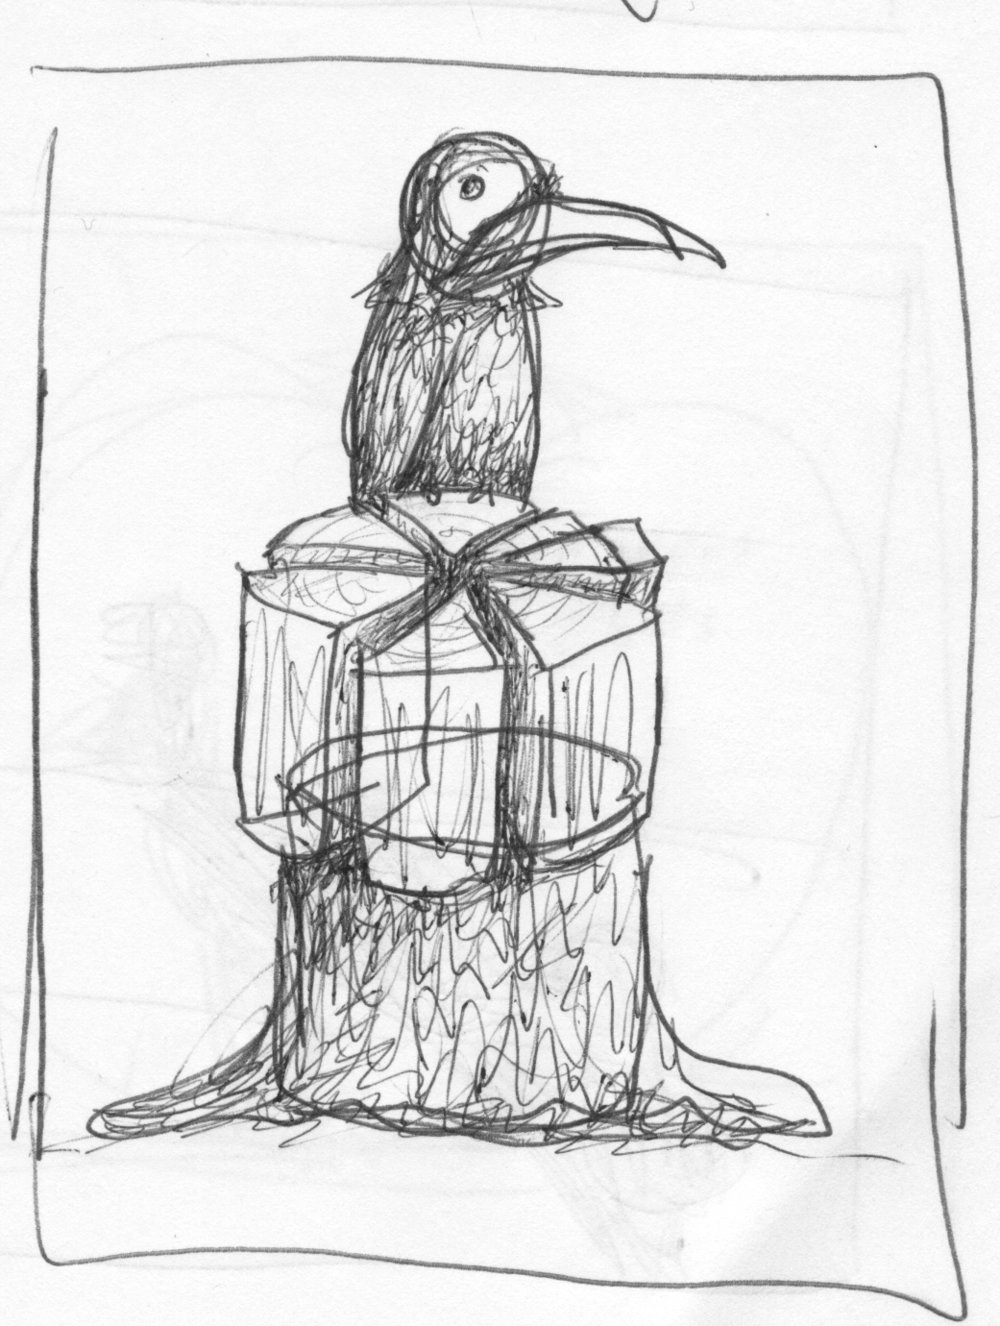 A crow sits on pieces of wood arranged like a sliced cake.